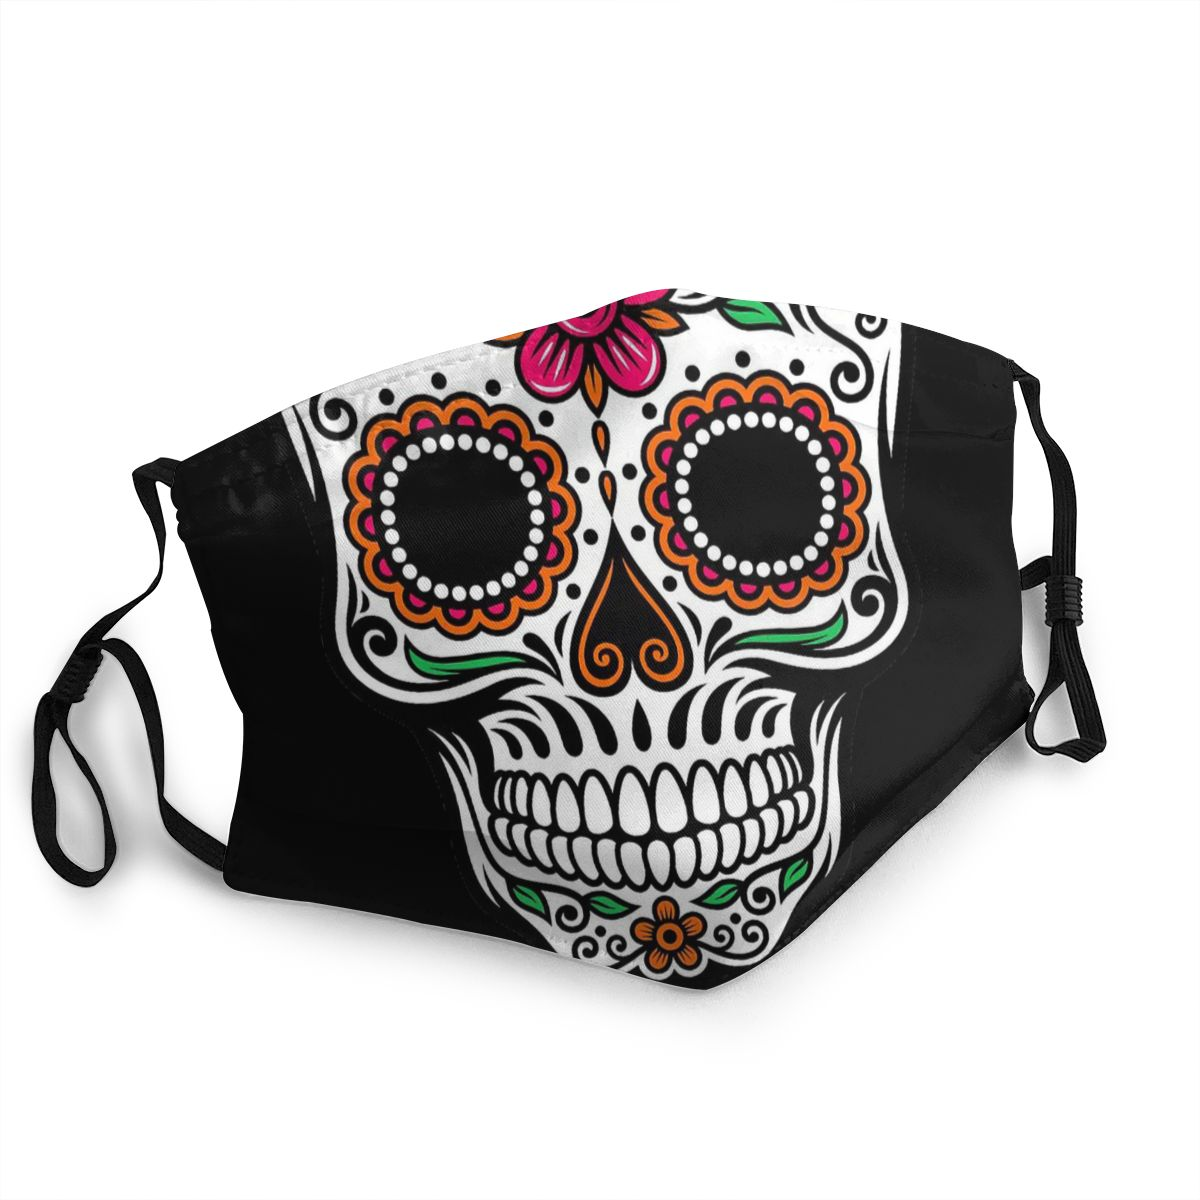 Skull Adult Reusable Mouth Face Mask Anti Haze Dust Mask Protection Mask Respirator Mouth Muffle